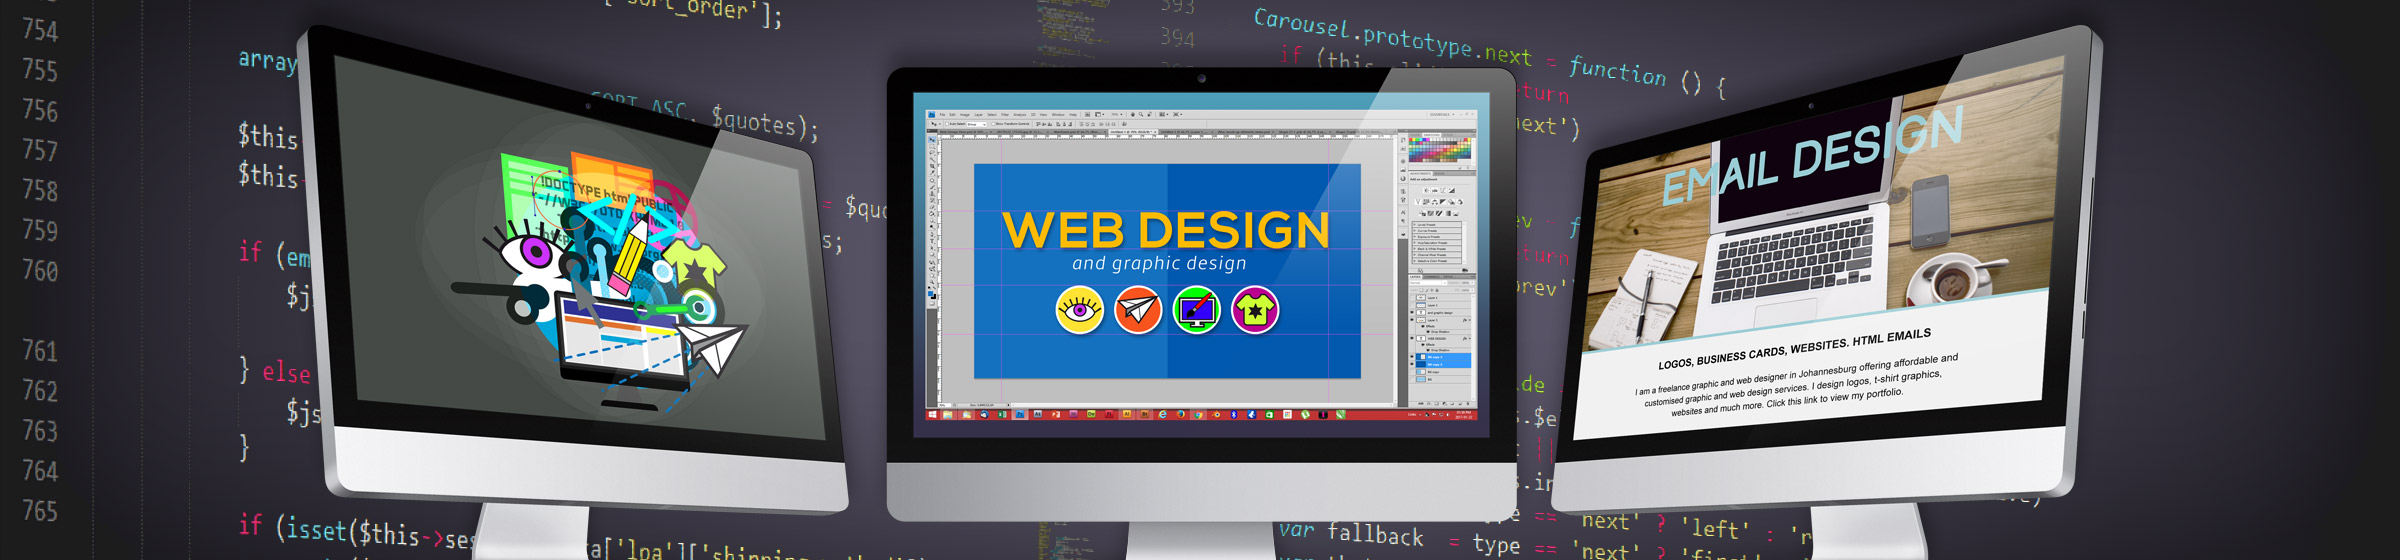 Web design and digital design